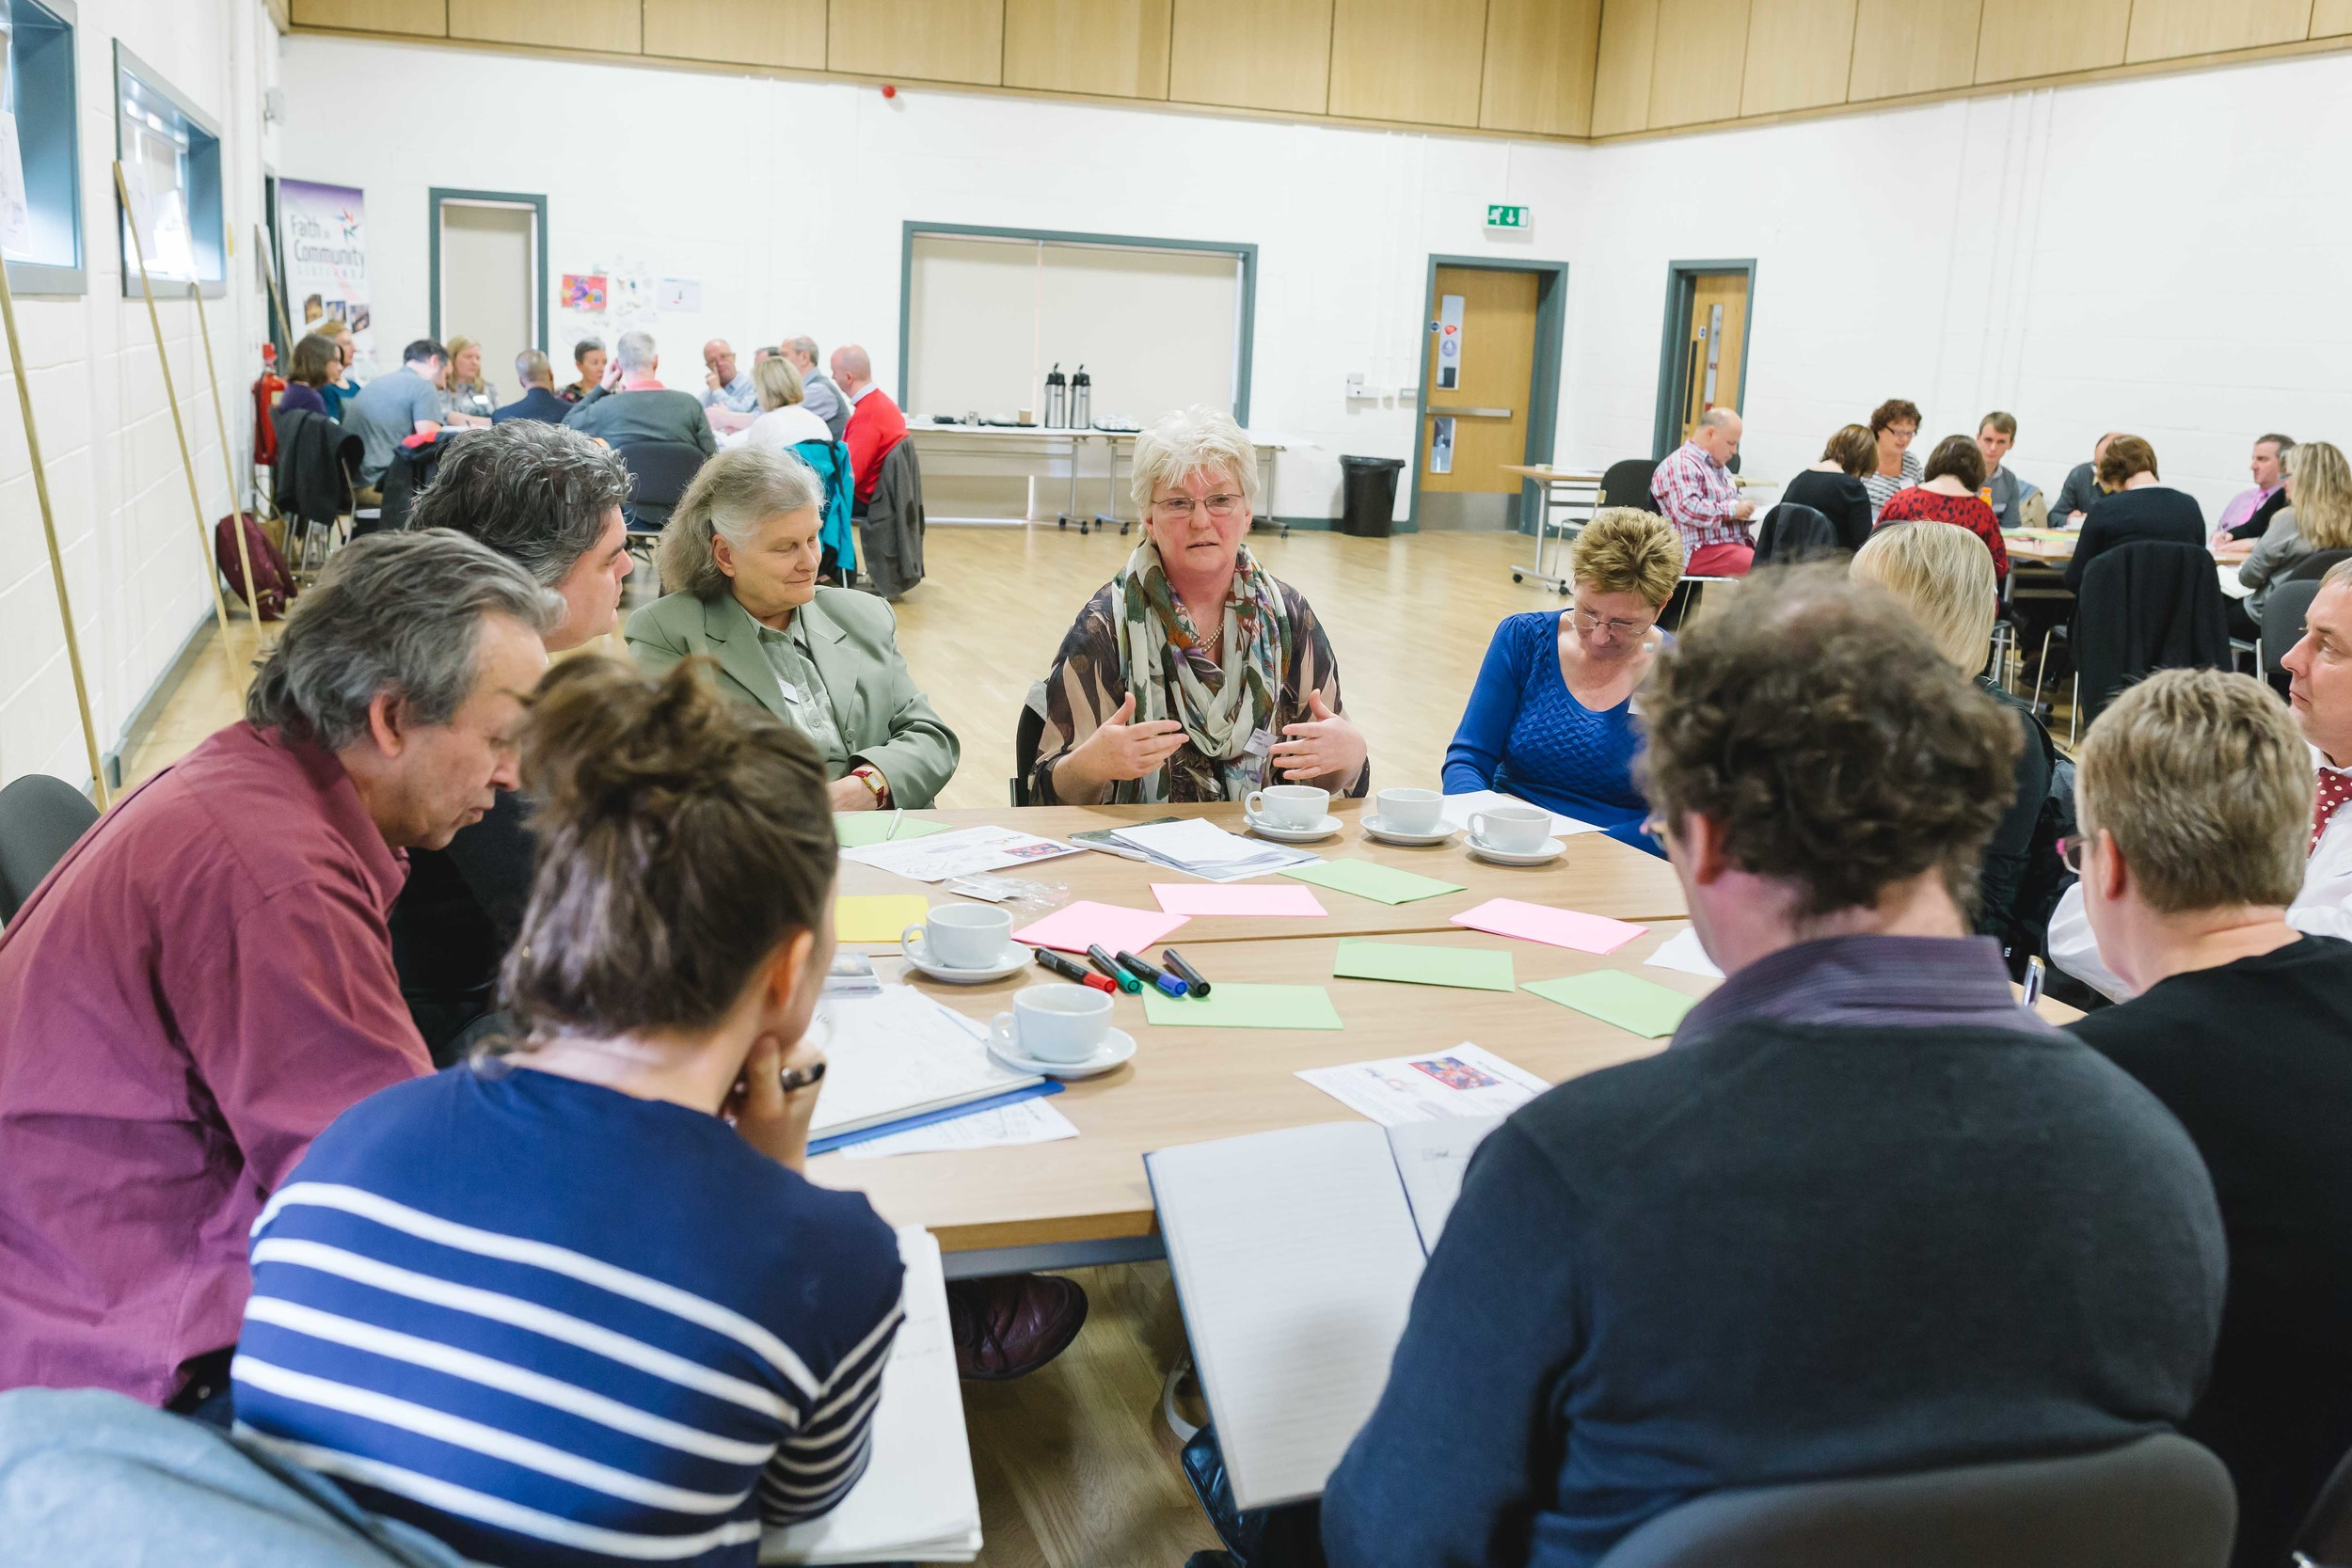 Image from PB learning event, Townhead Village Hall, Glasgow, October 2014